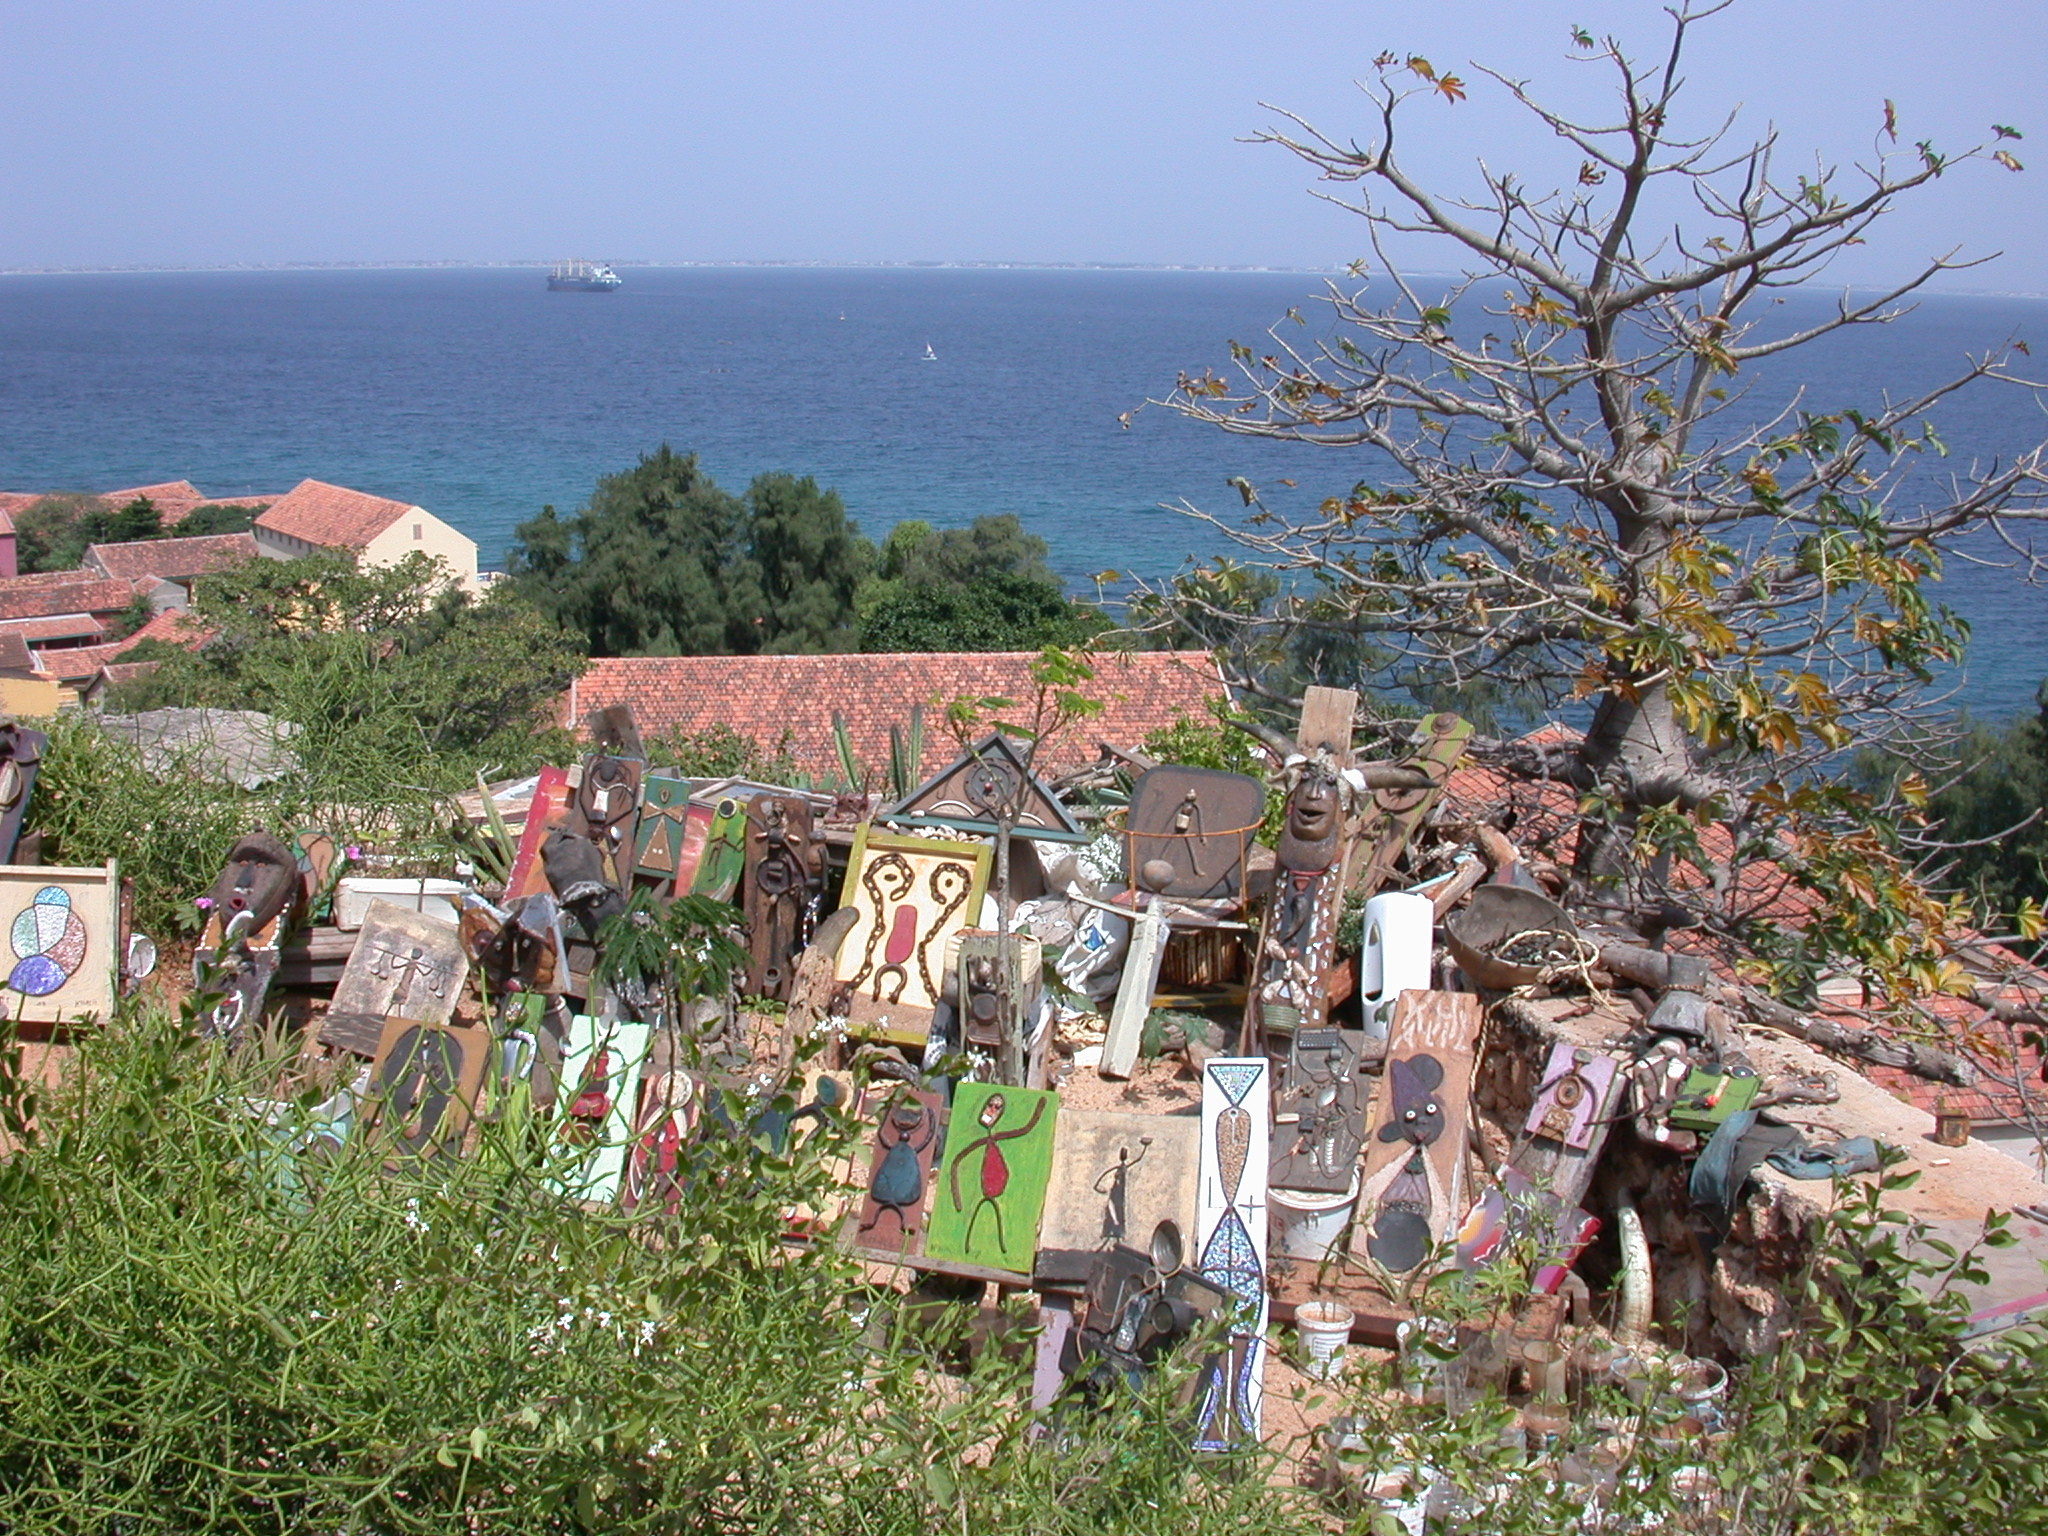 Artist Shop on Top of Peak at Ile de Goree, Dakar, Senegal